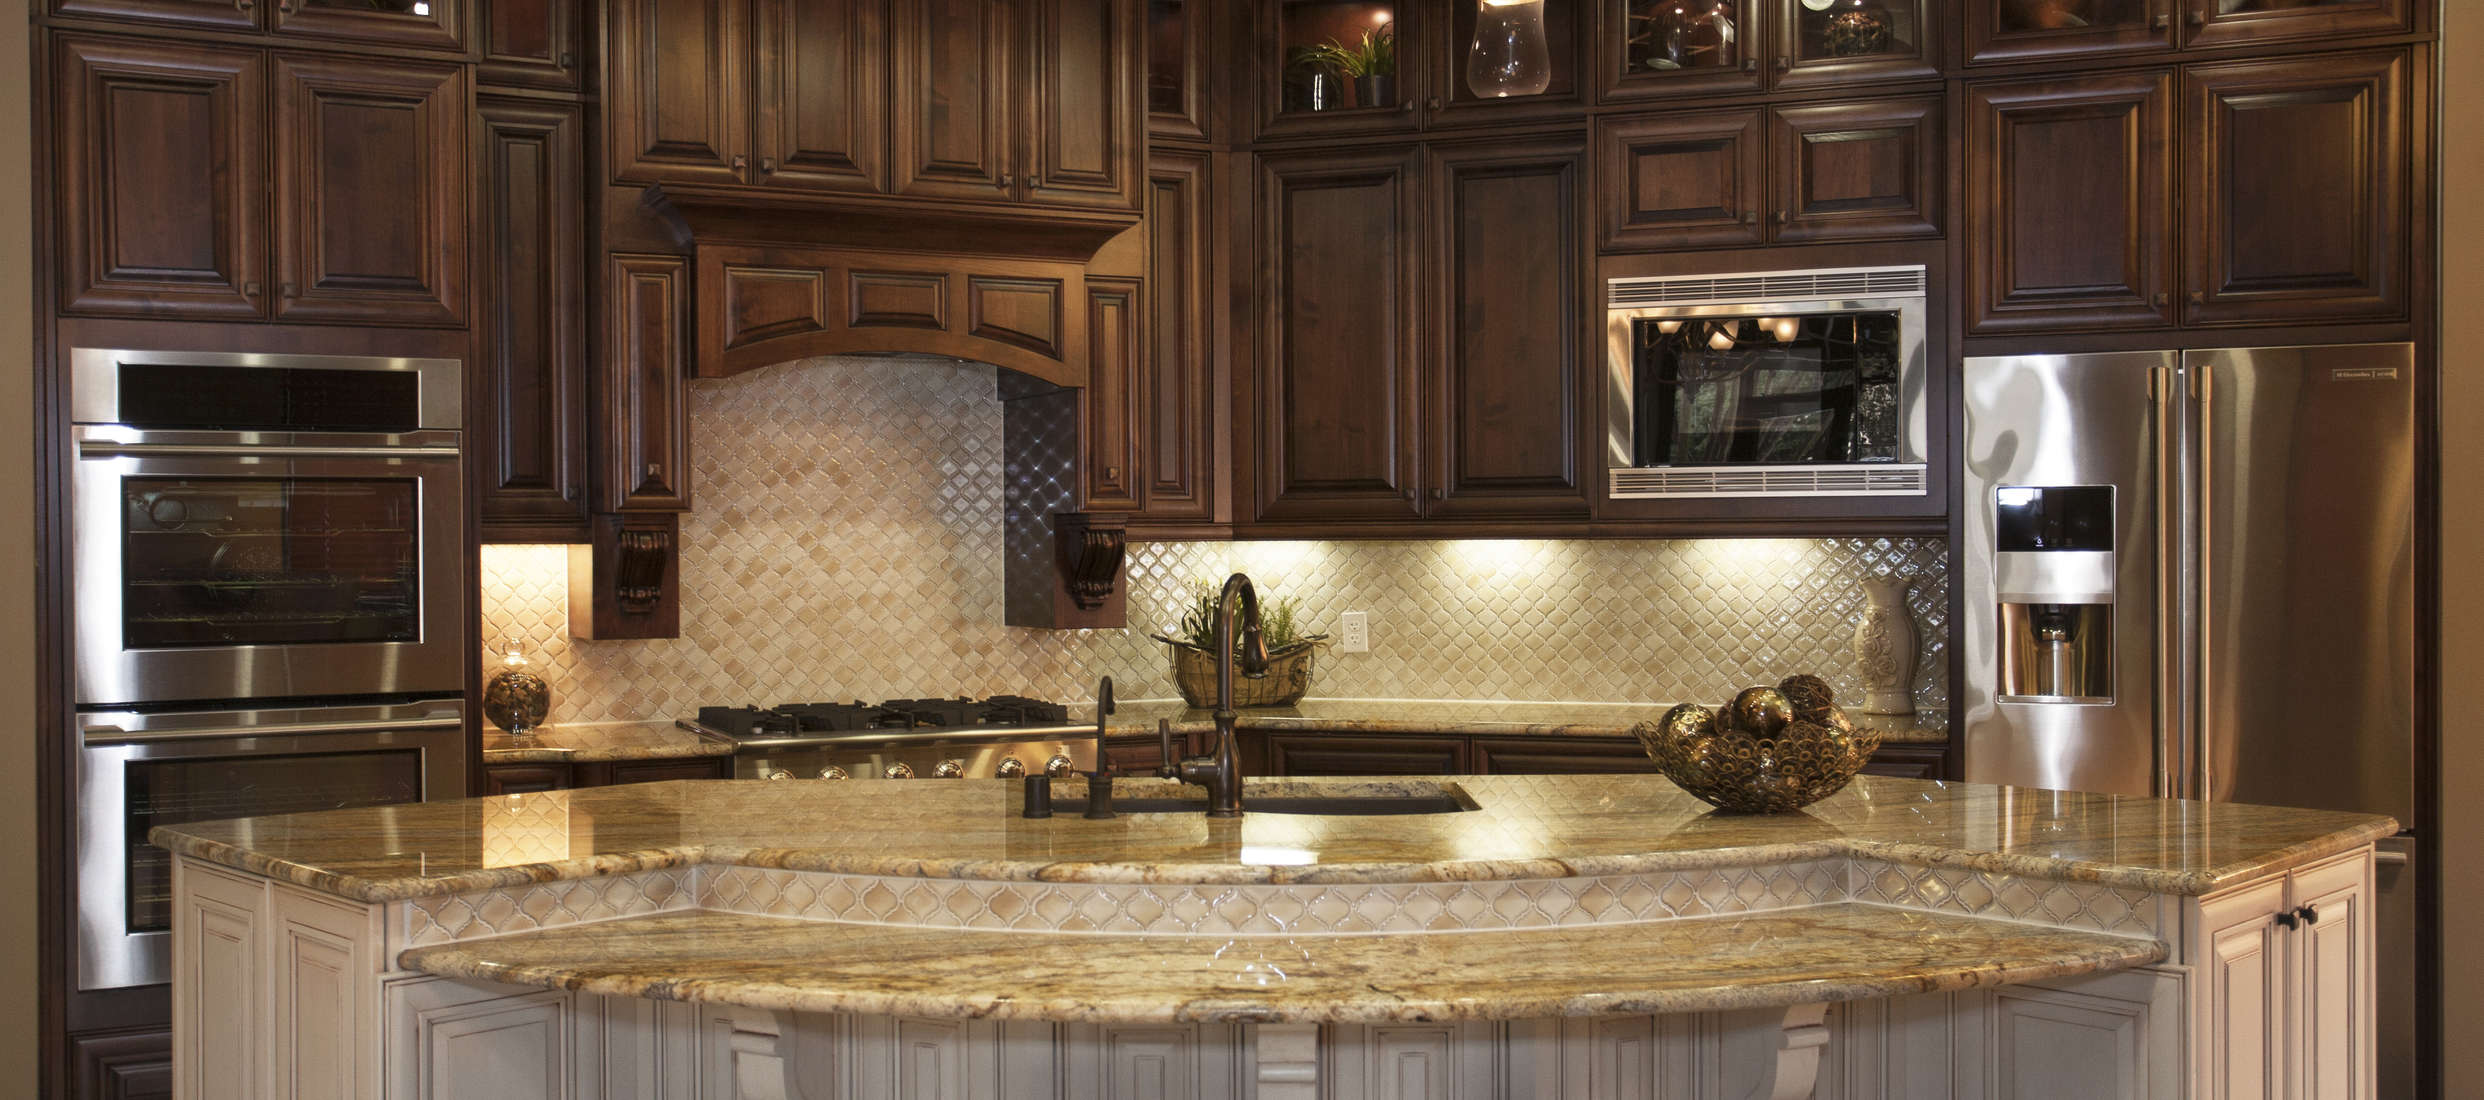 Custom Kitchen Cabinets Houston Custom Cabinet Makers Houston Tx Cabinets Matttroy